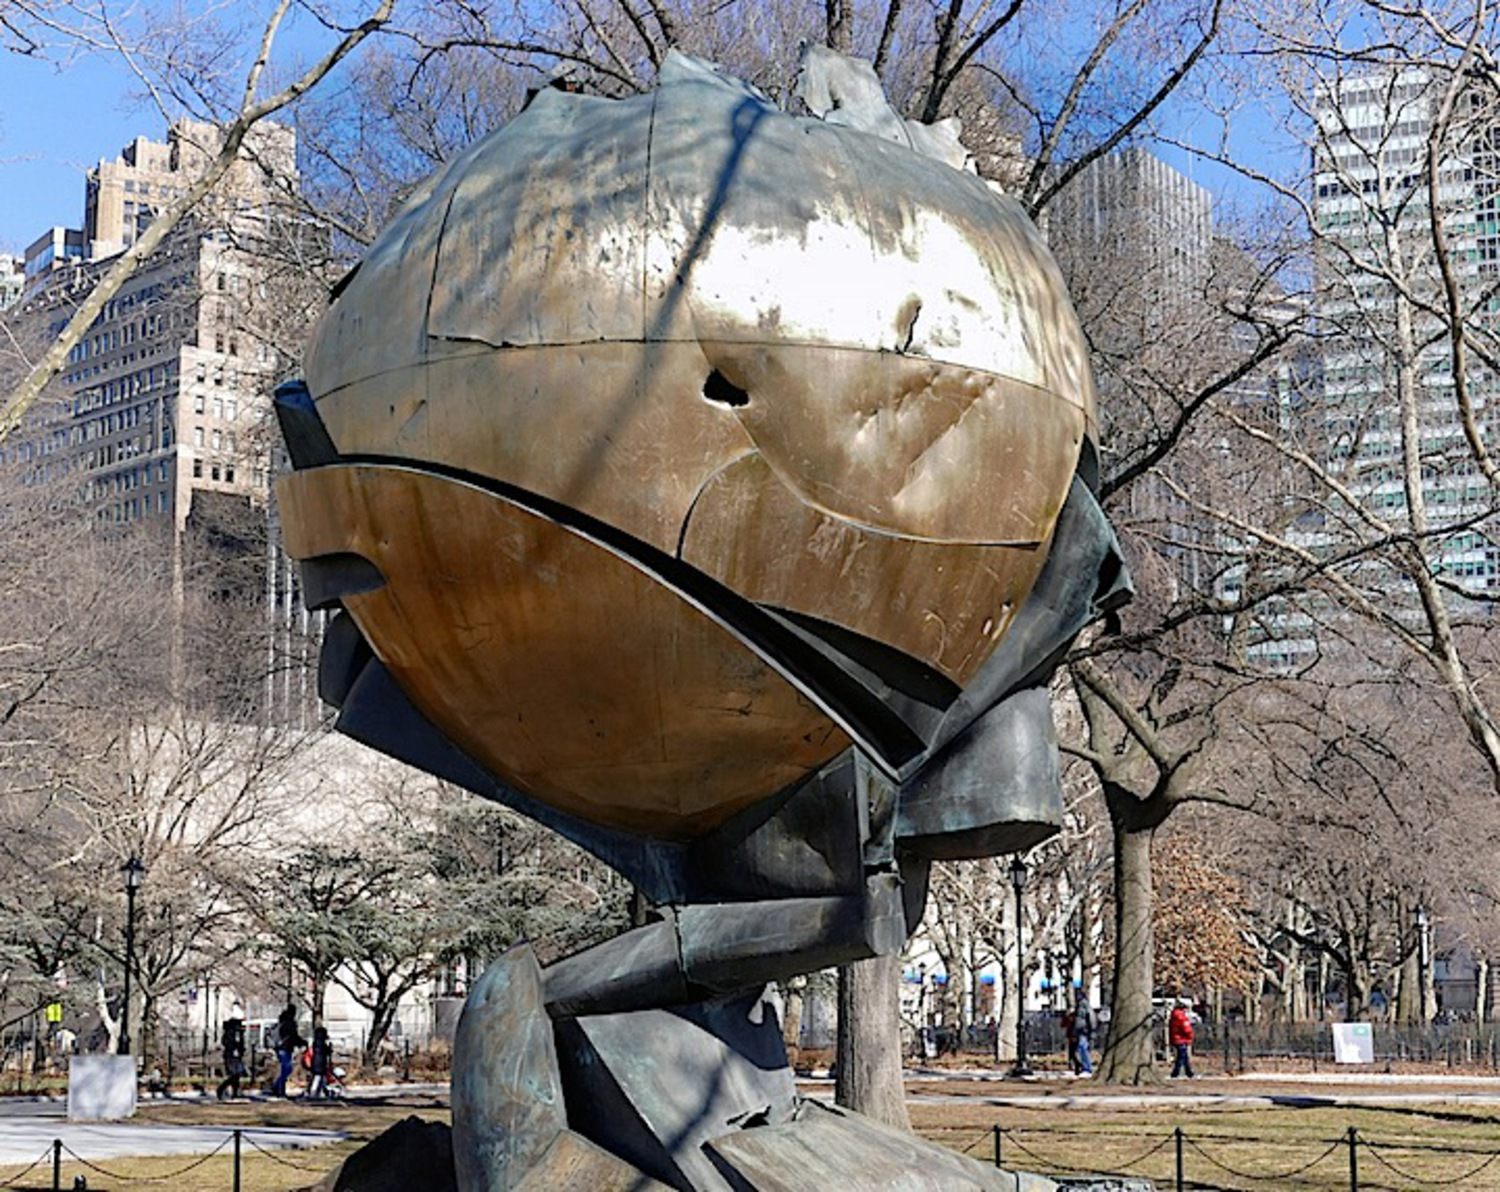 German sculptor Fritz Koenig, the Sphere, the sole surviving artwork from the grounds of the original World Trade Center